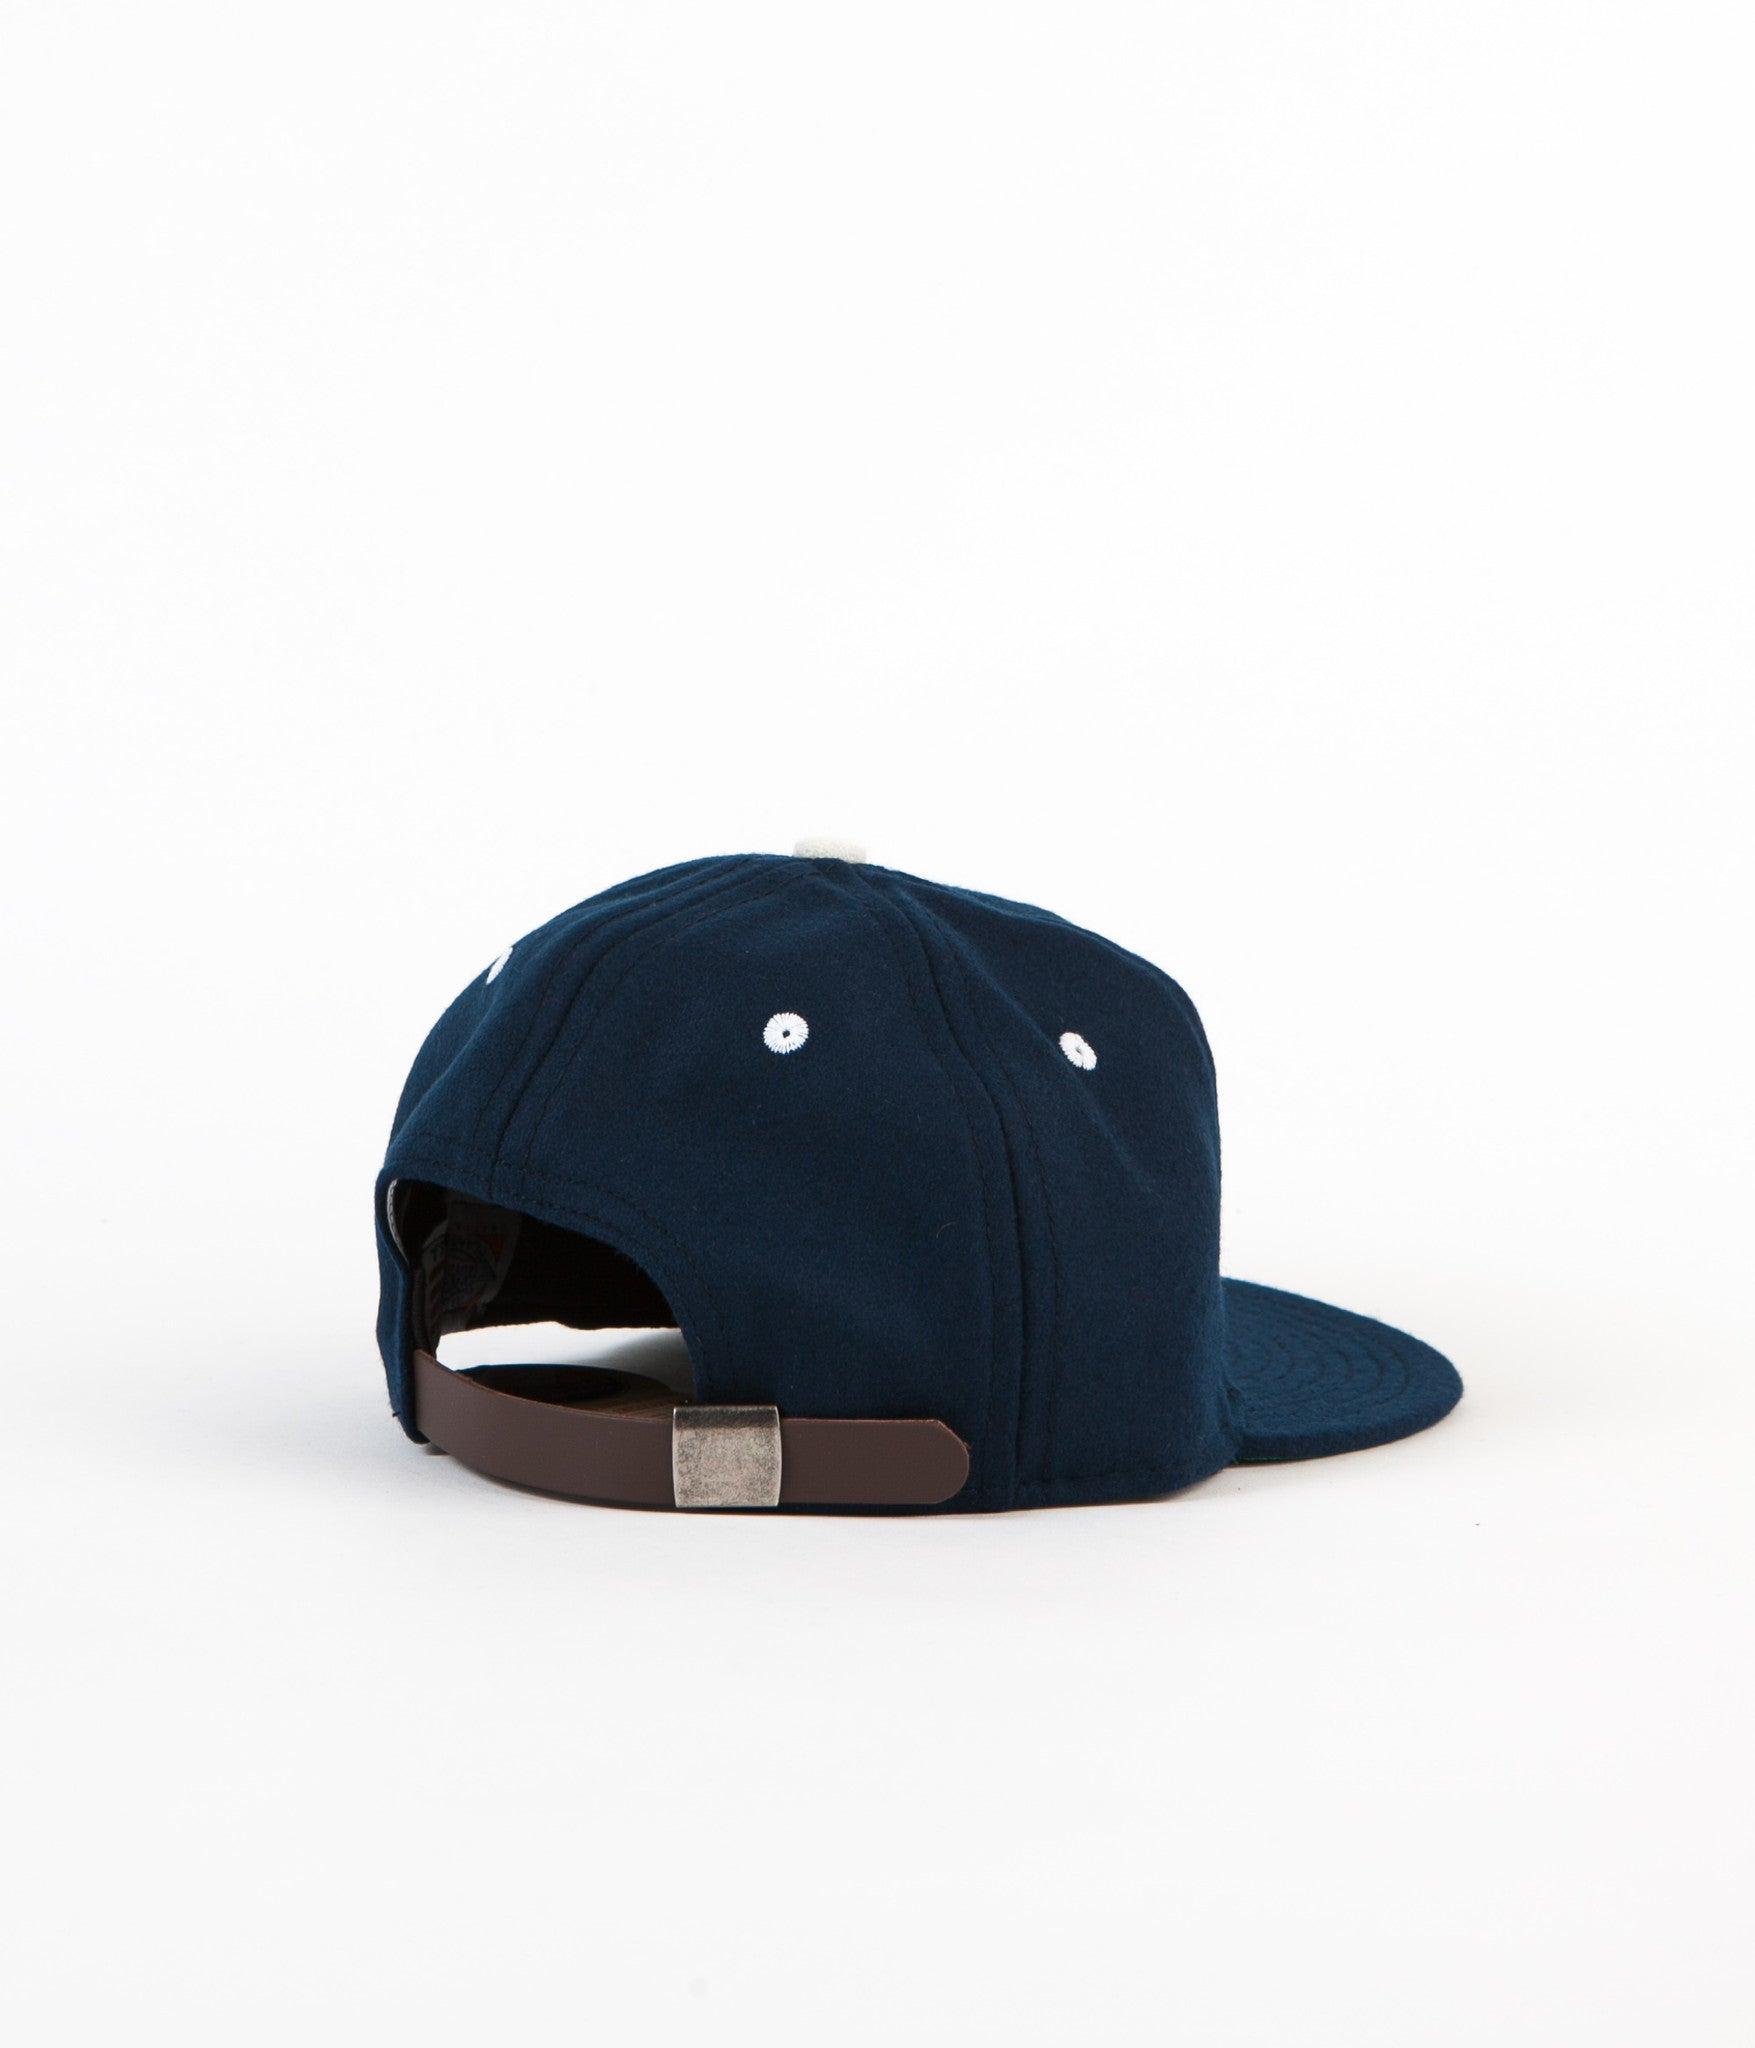 Ebbets Field Flannels Los Angeles Angels 1954 Cap - Navy